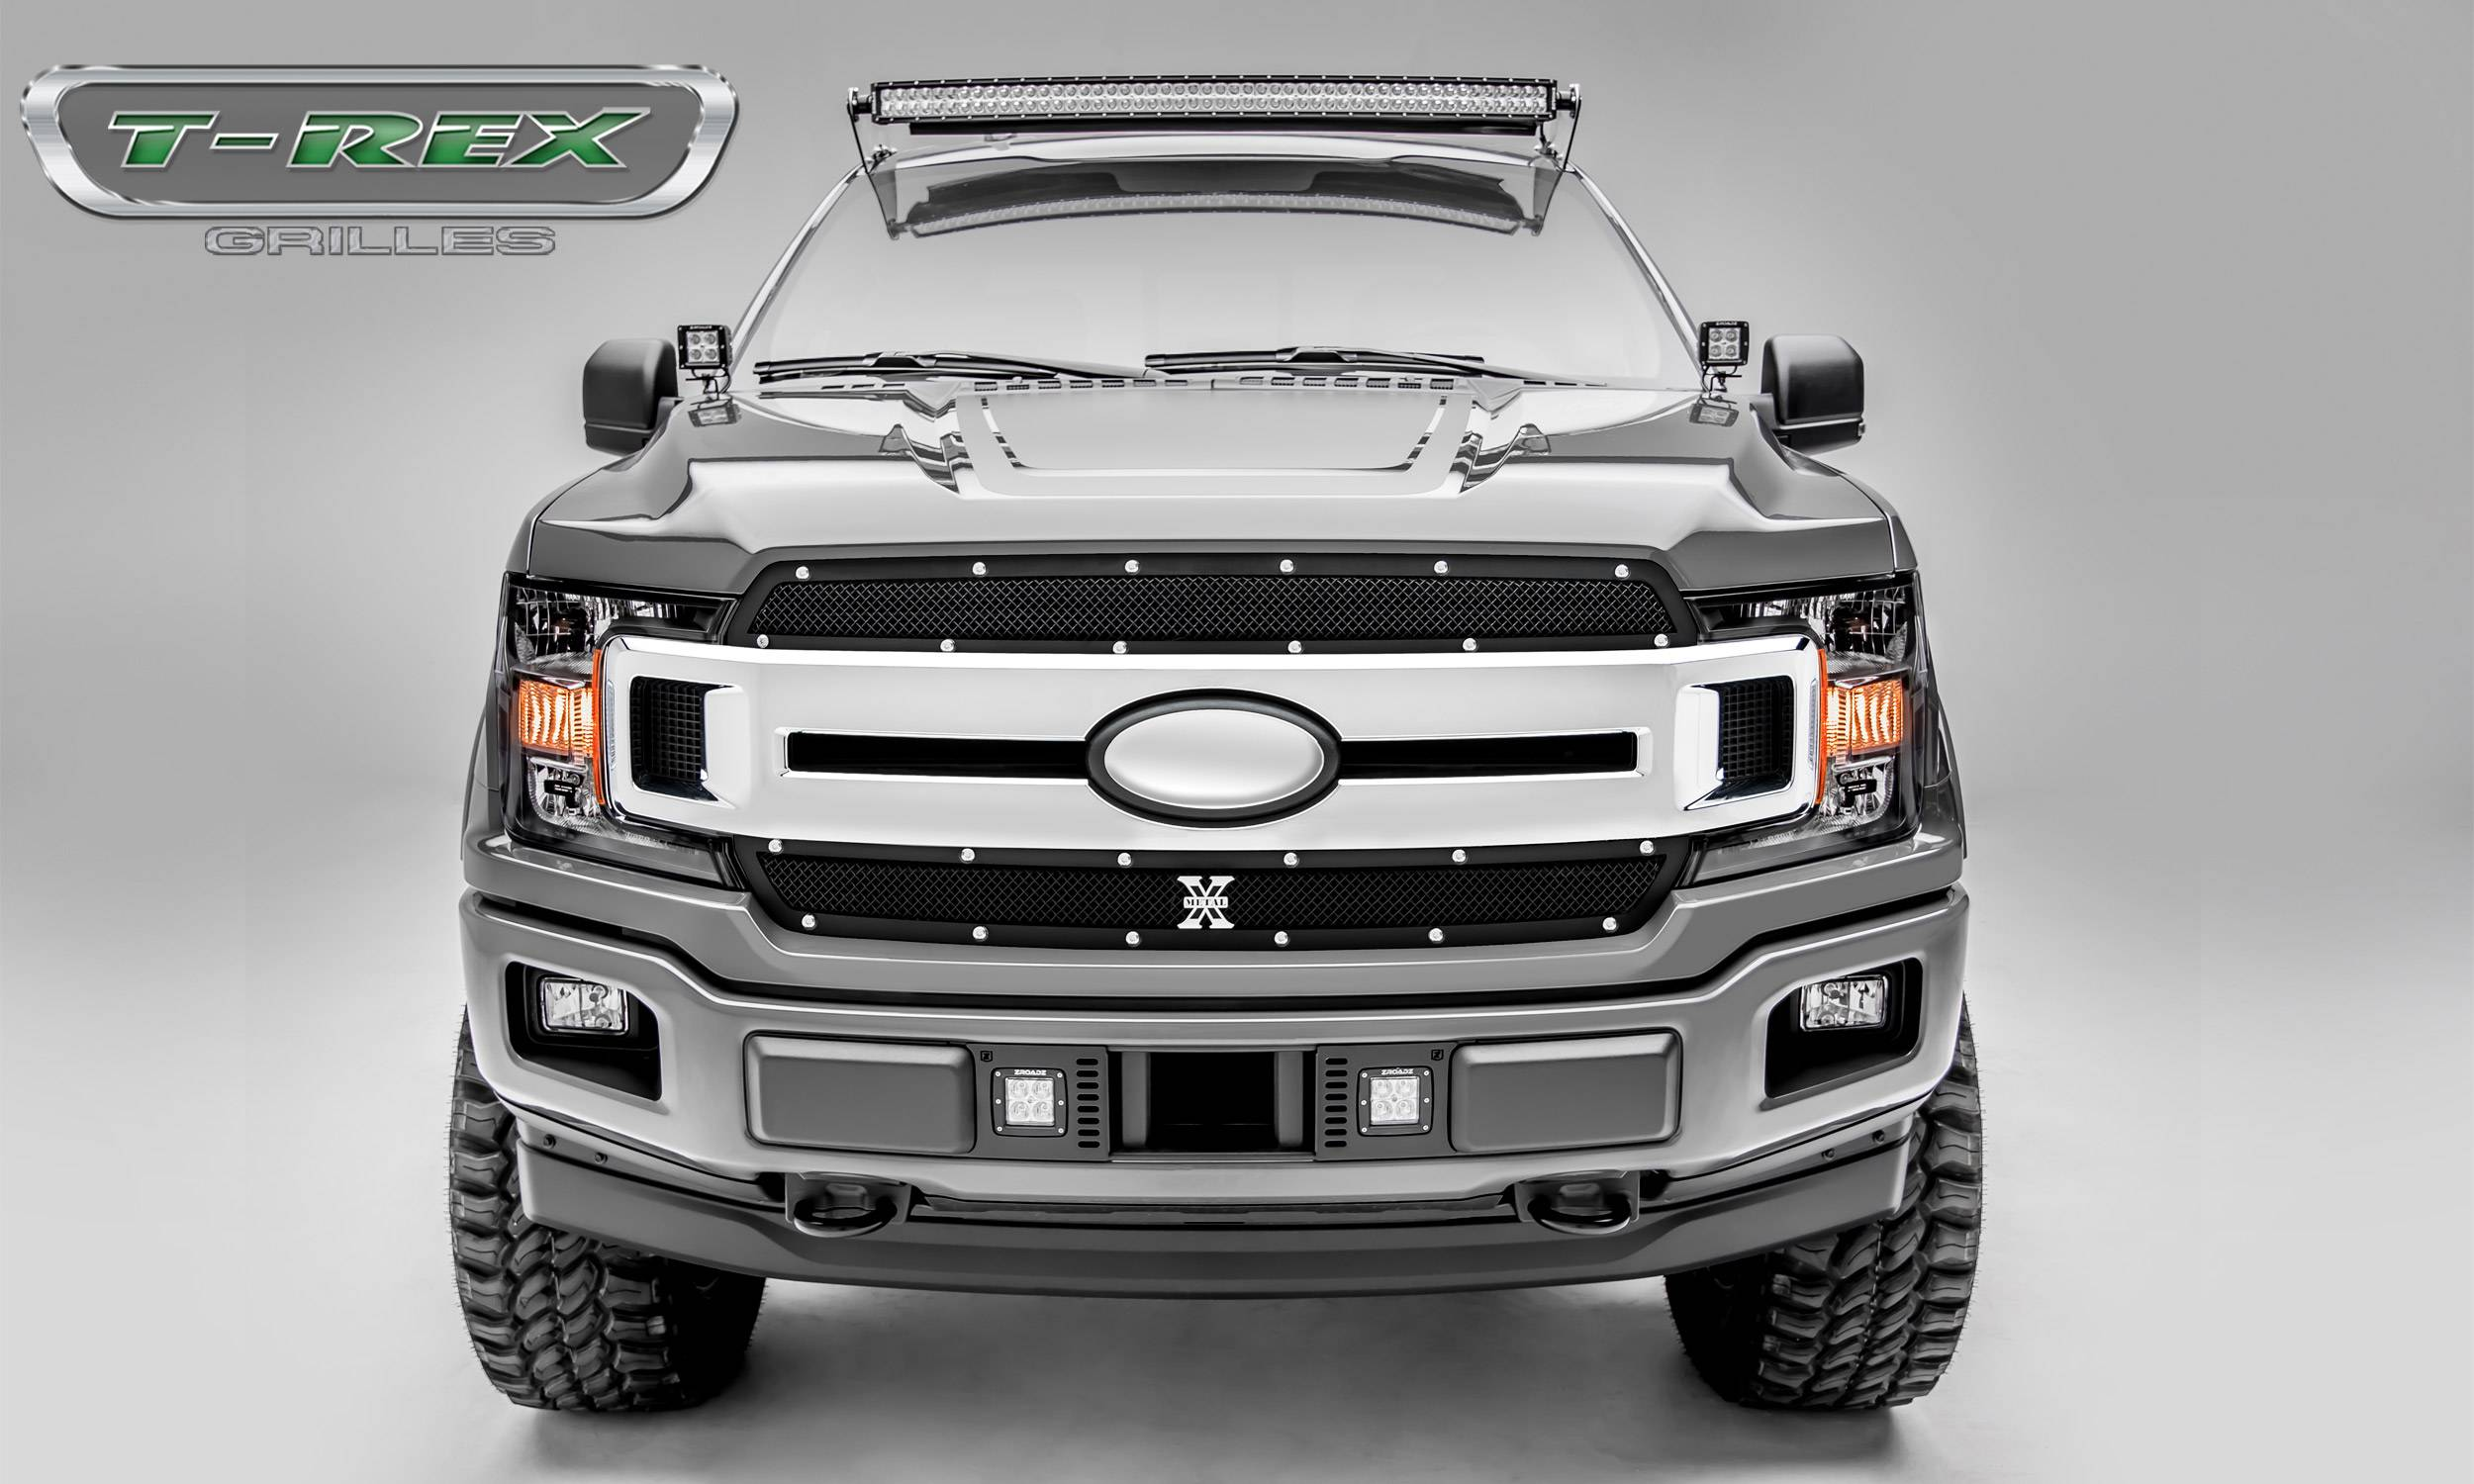 T-REX Grilles - T-REX Ford F-150 - X-Metal Series - 2 PC Main Grille Overlay / Insert with Chrome Studs and Black Powdercoat Finish - Pt # 6715691